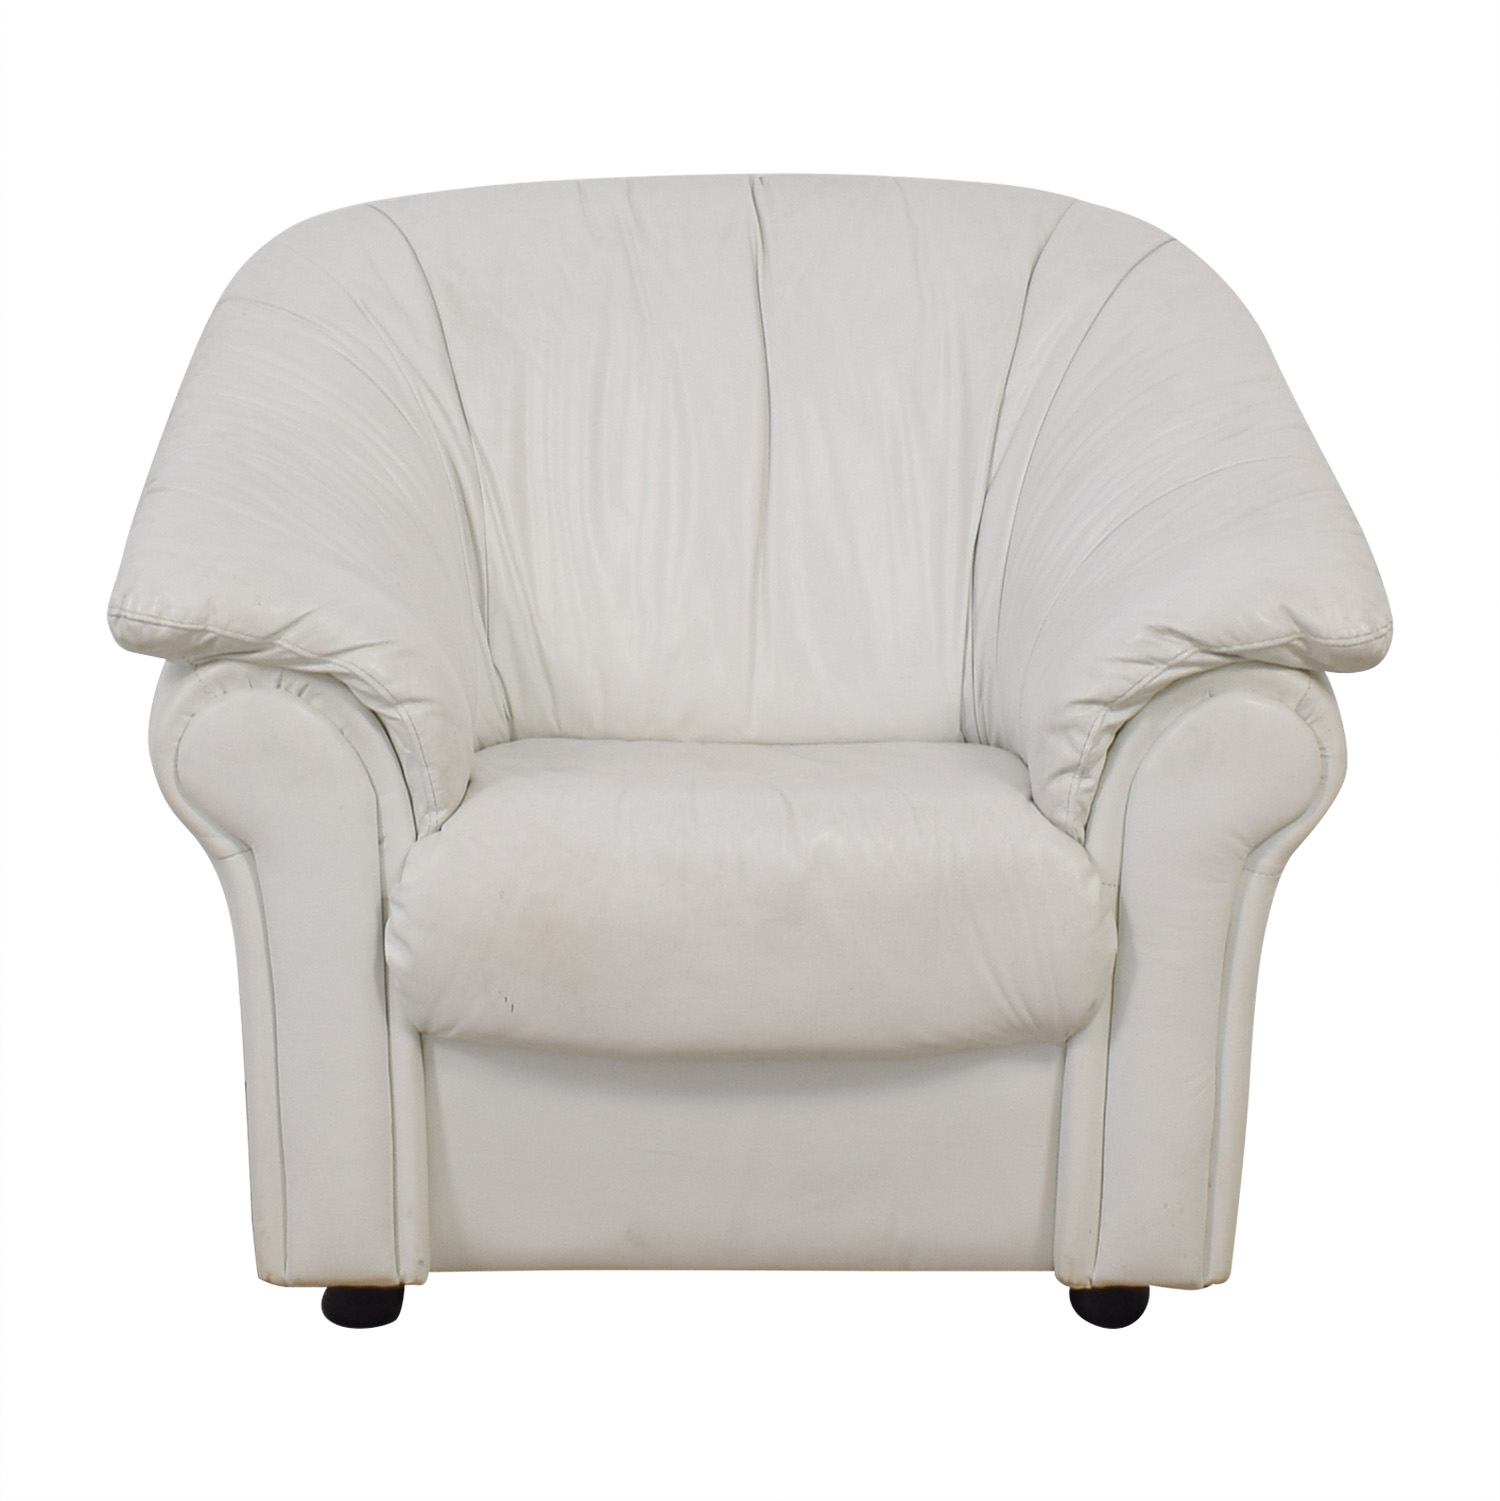 90% OFF - West Elm West Elm White Leather Armchair / Chairs